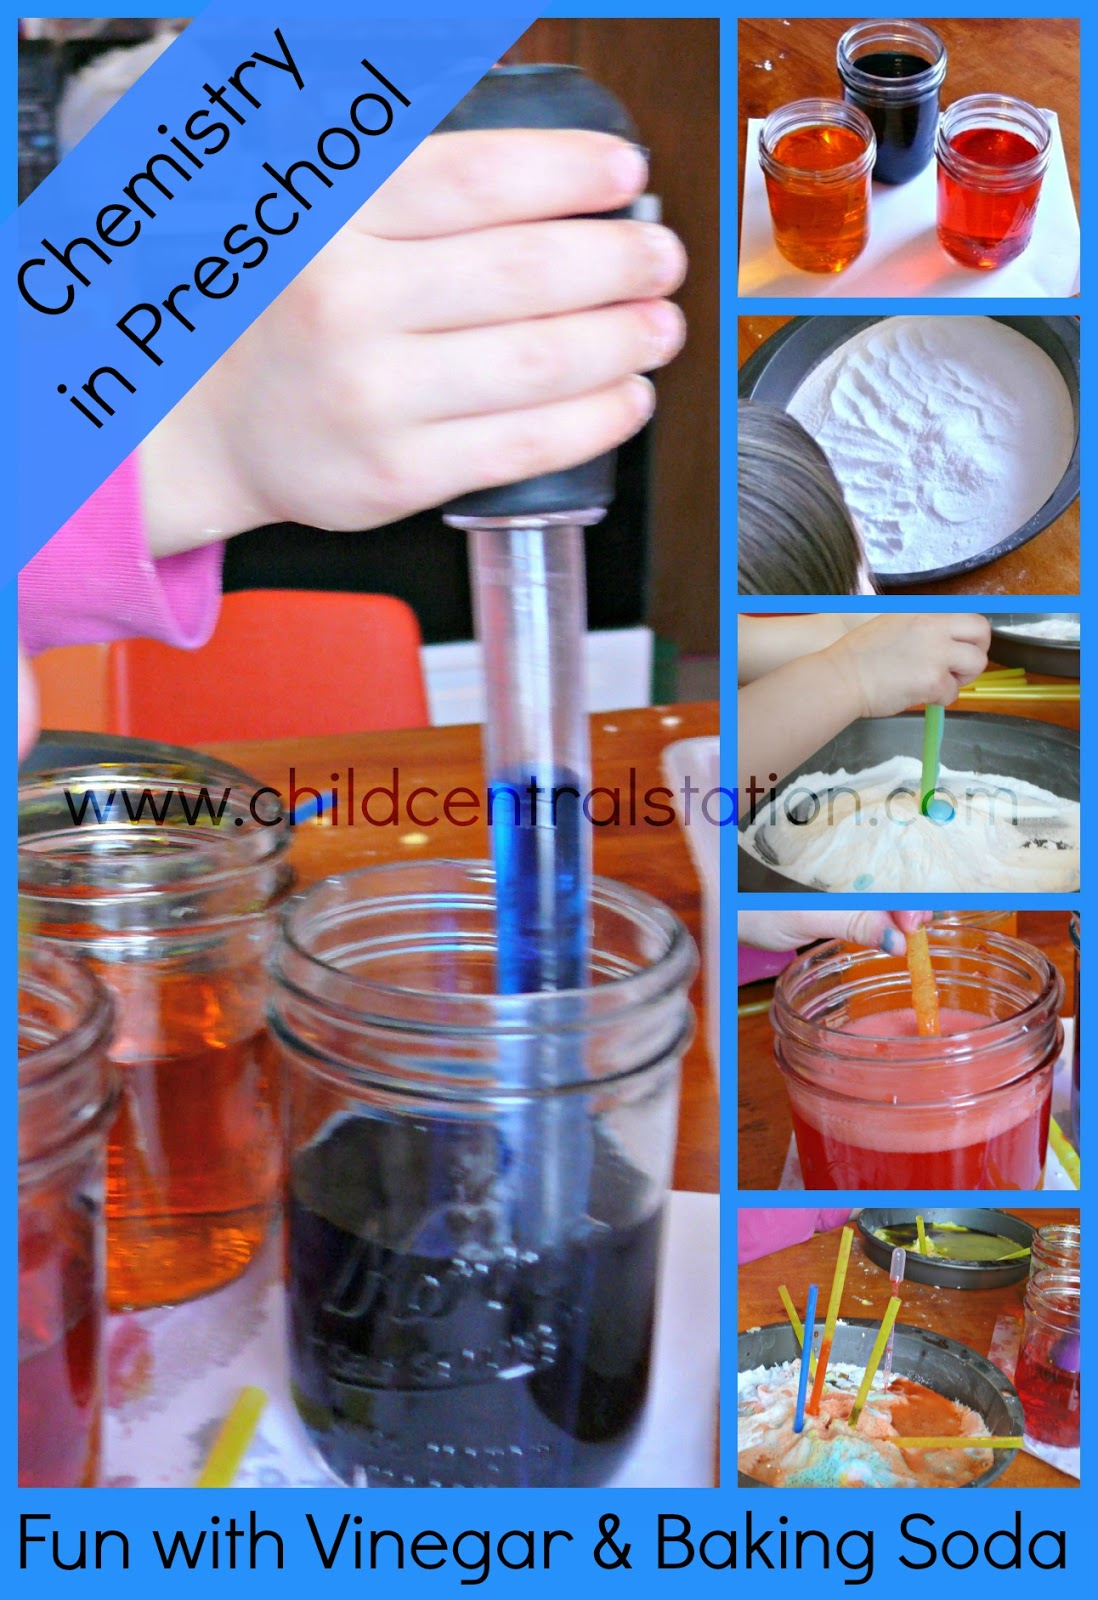 Worksheet Baking Science Experiments preschool chemistry fun with vinegar and baking soda child central station